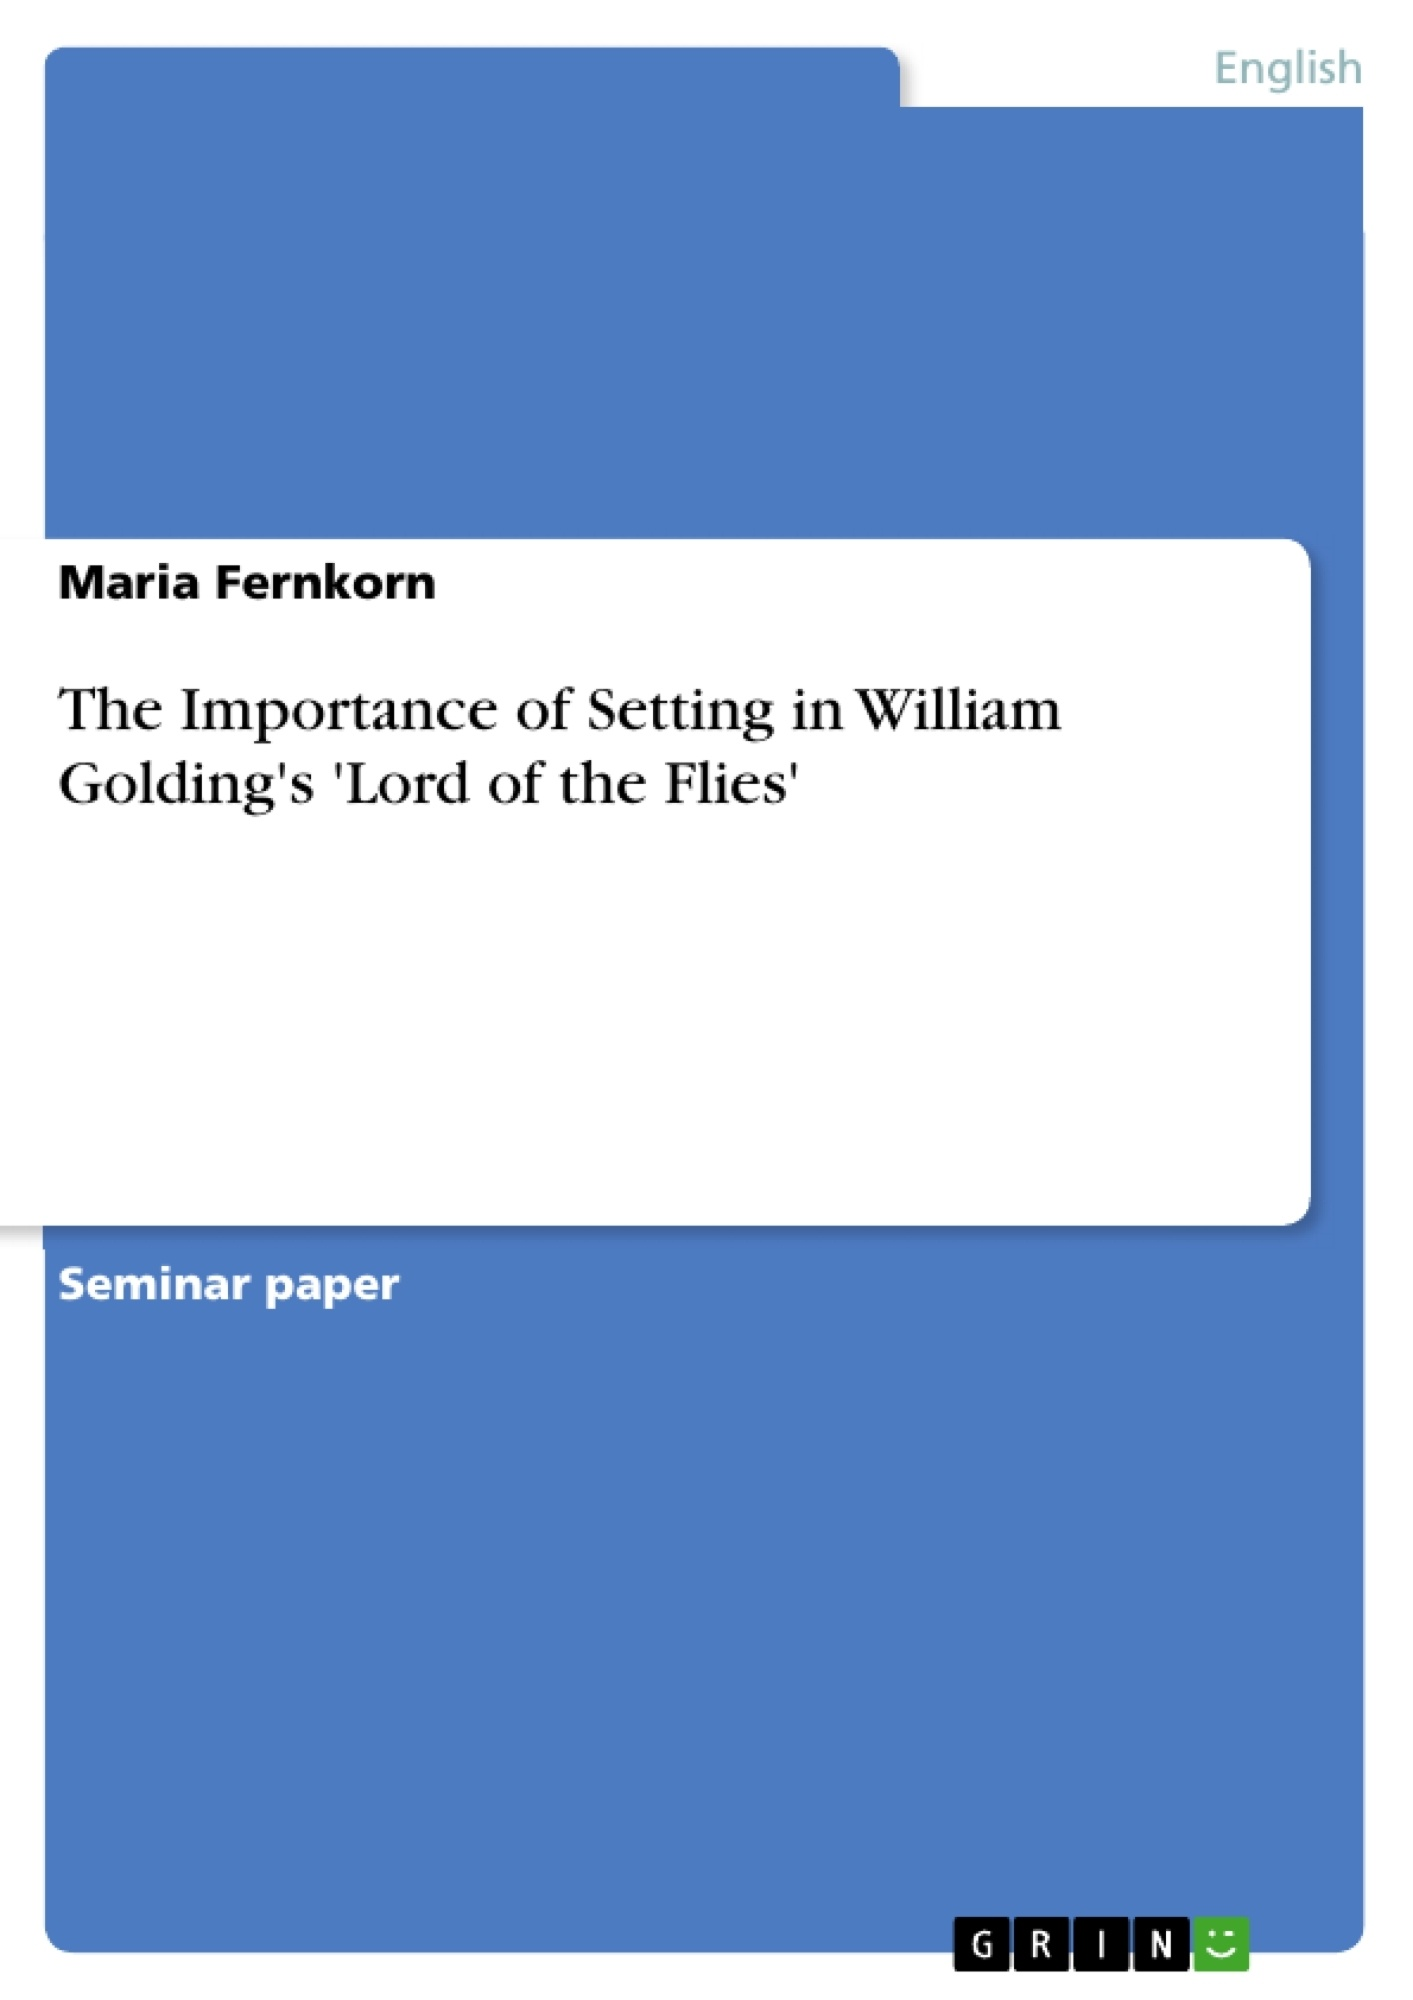 the importance of setting in william golding s lord of the flies  upload your own papers earn money and win an iphone x